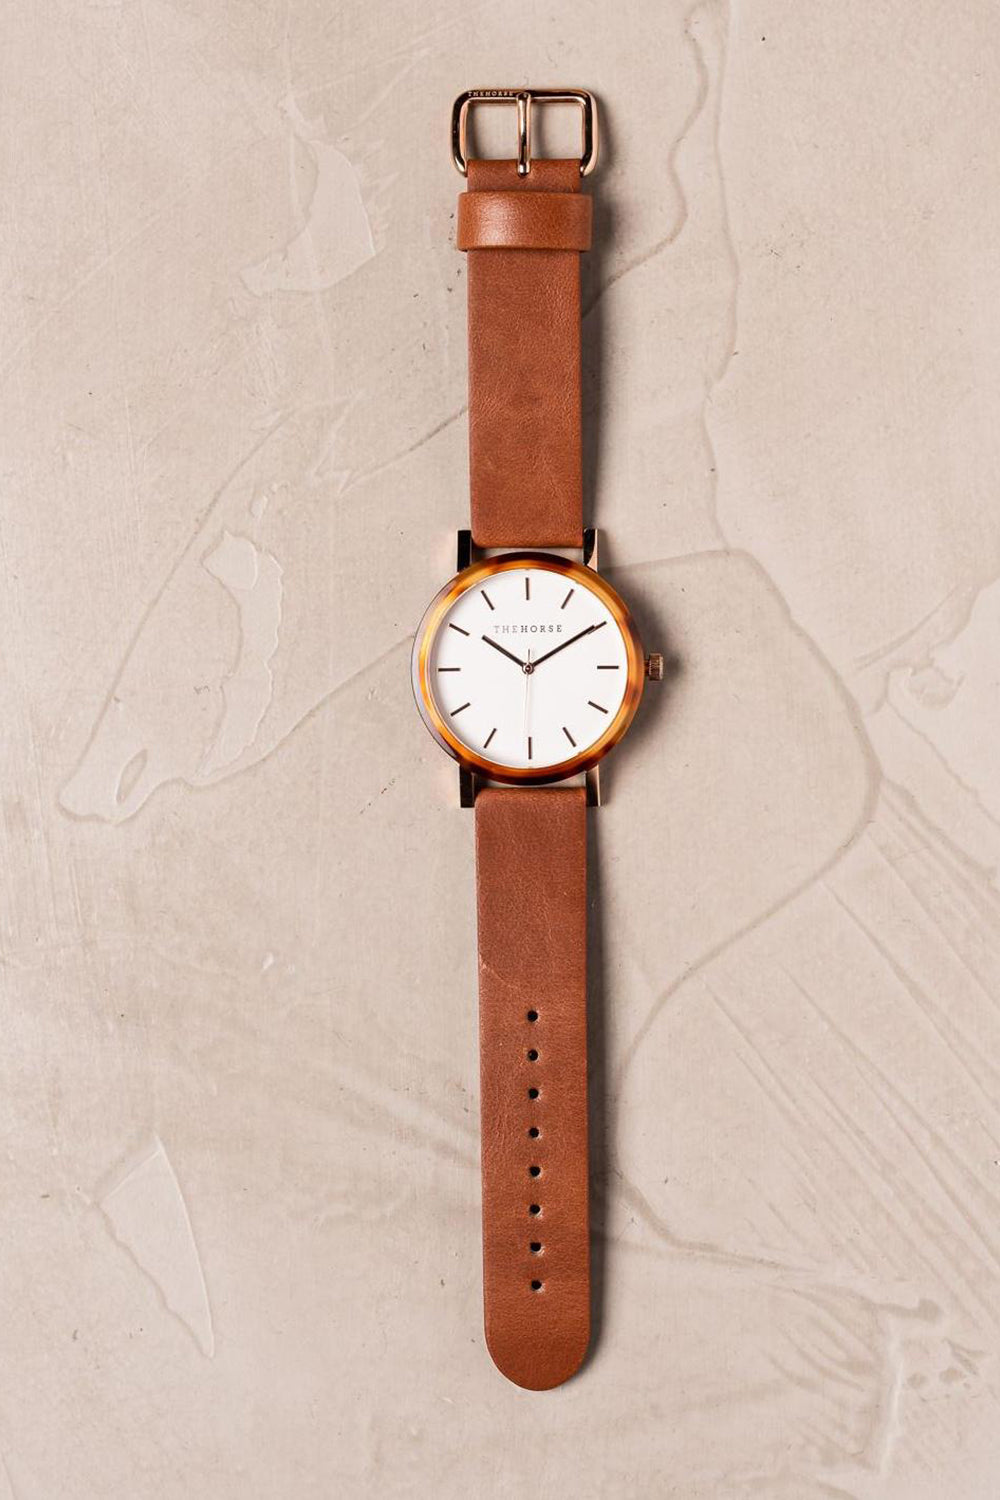 CARAMEL TREACLE CASE - WHITE DIAL - ROSE GOLD INDEXING - TAN LEATHER